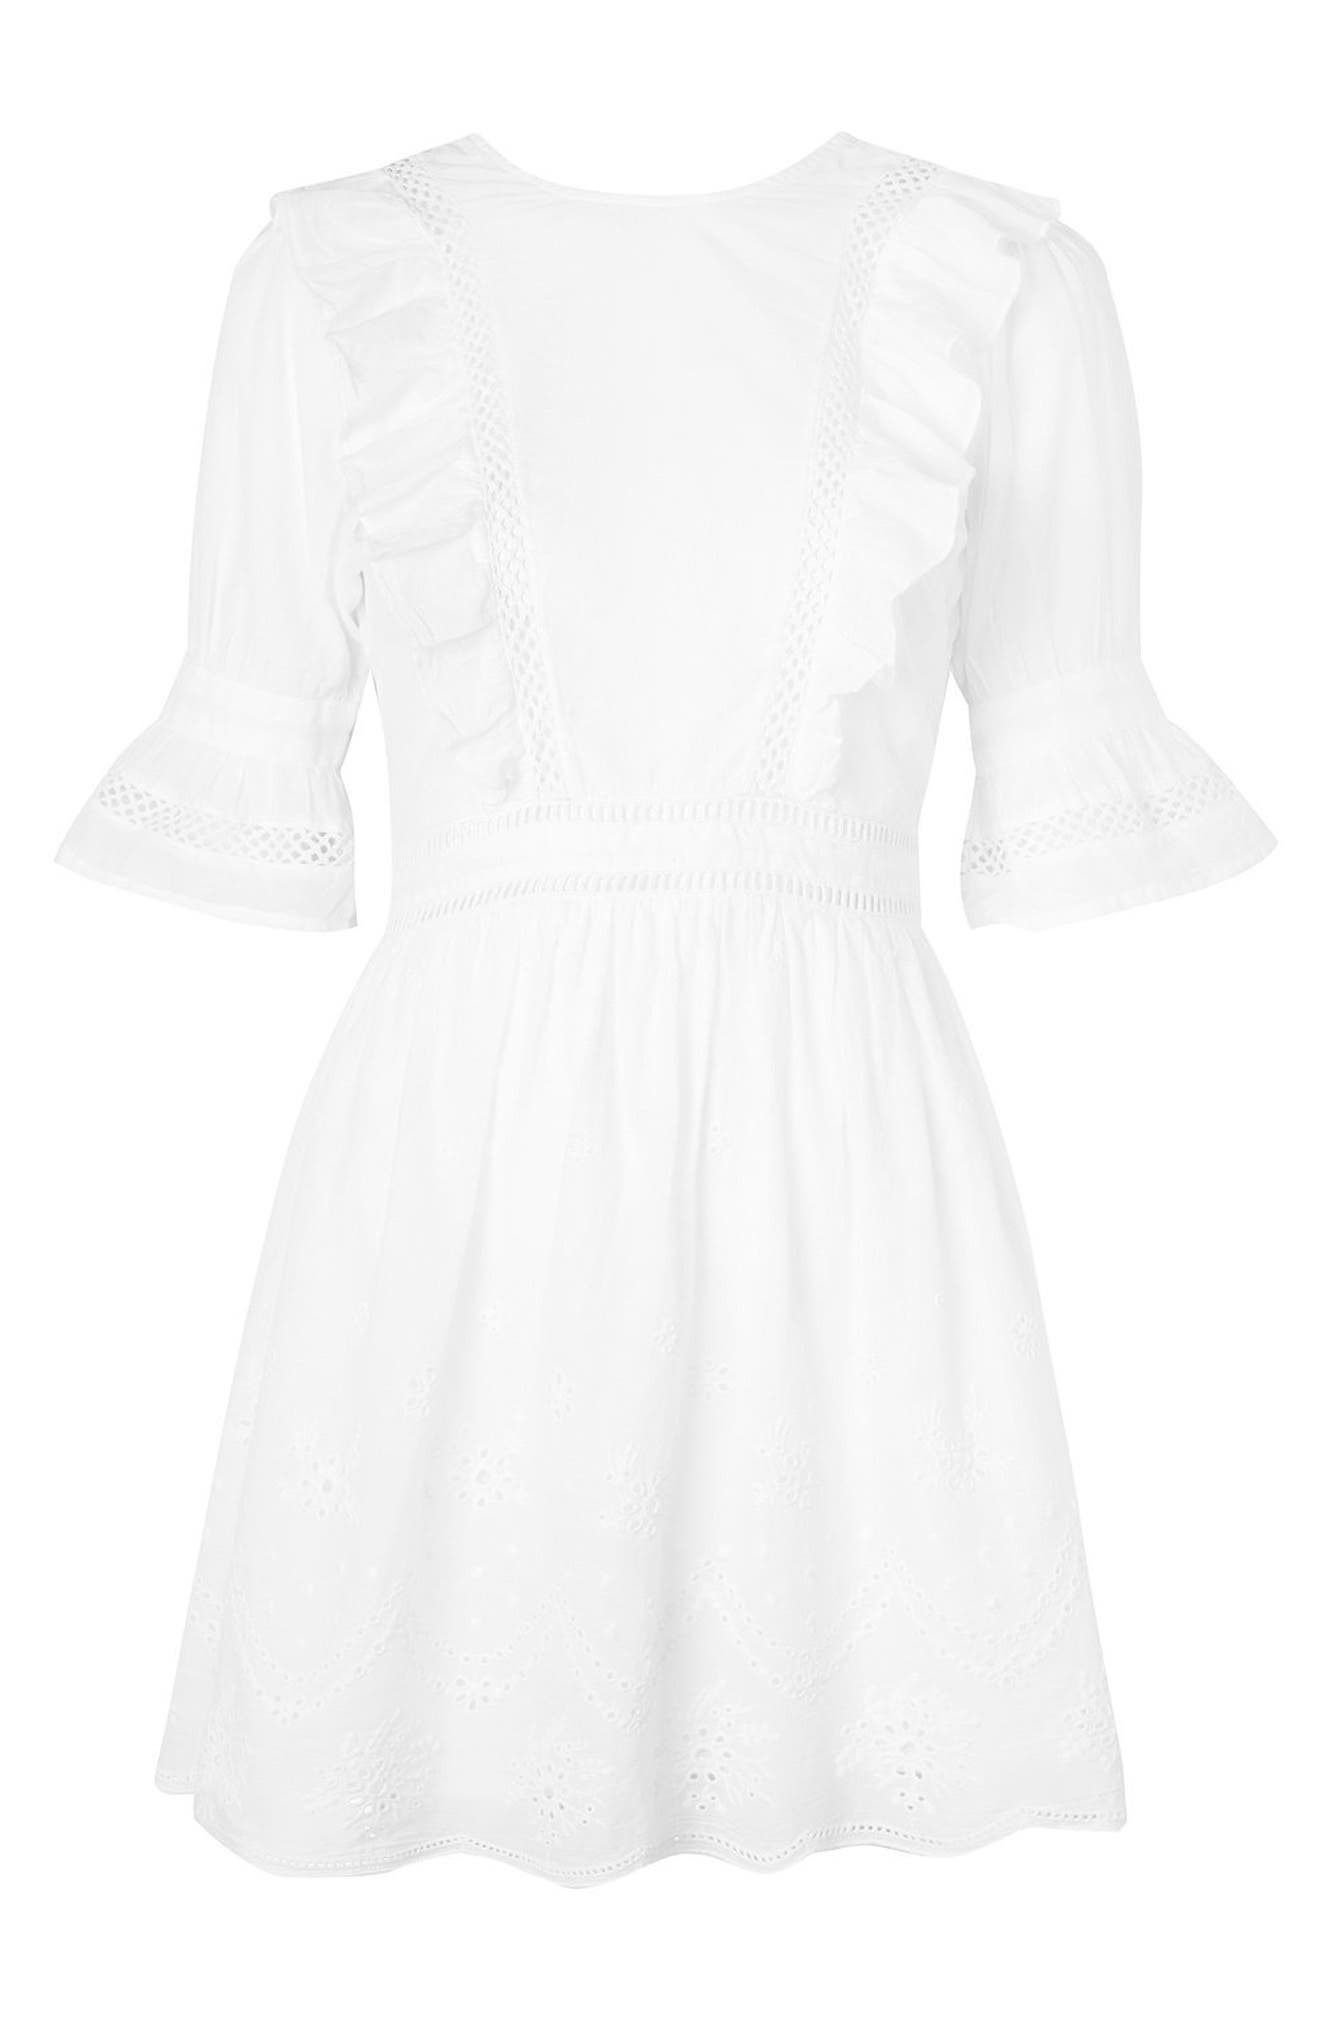 TOPSHOP, Broderie Ruffle Minidress, Alternate thumbnail 3, color, 100